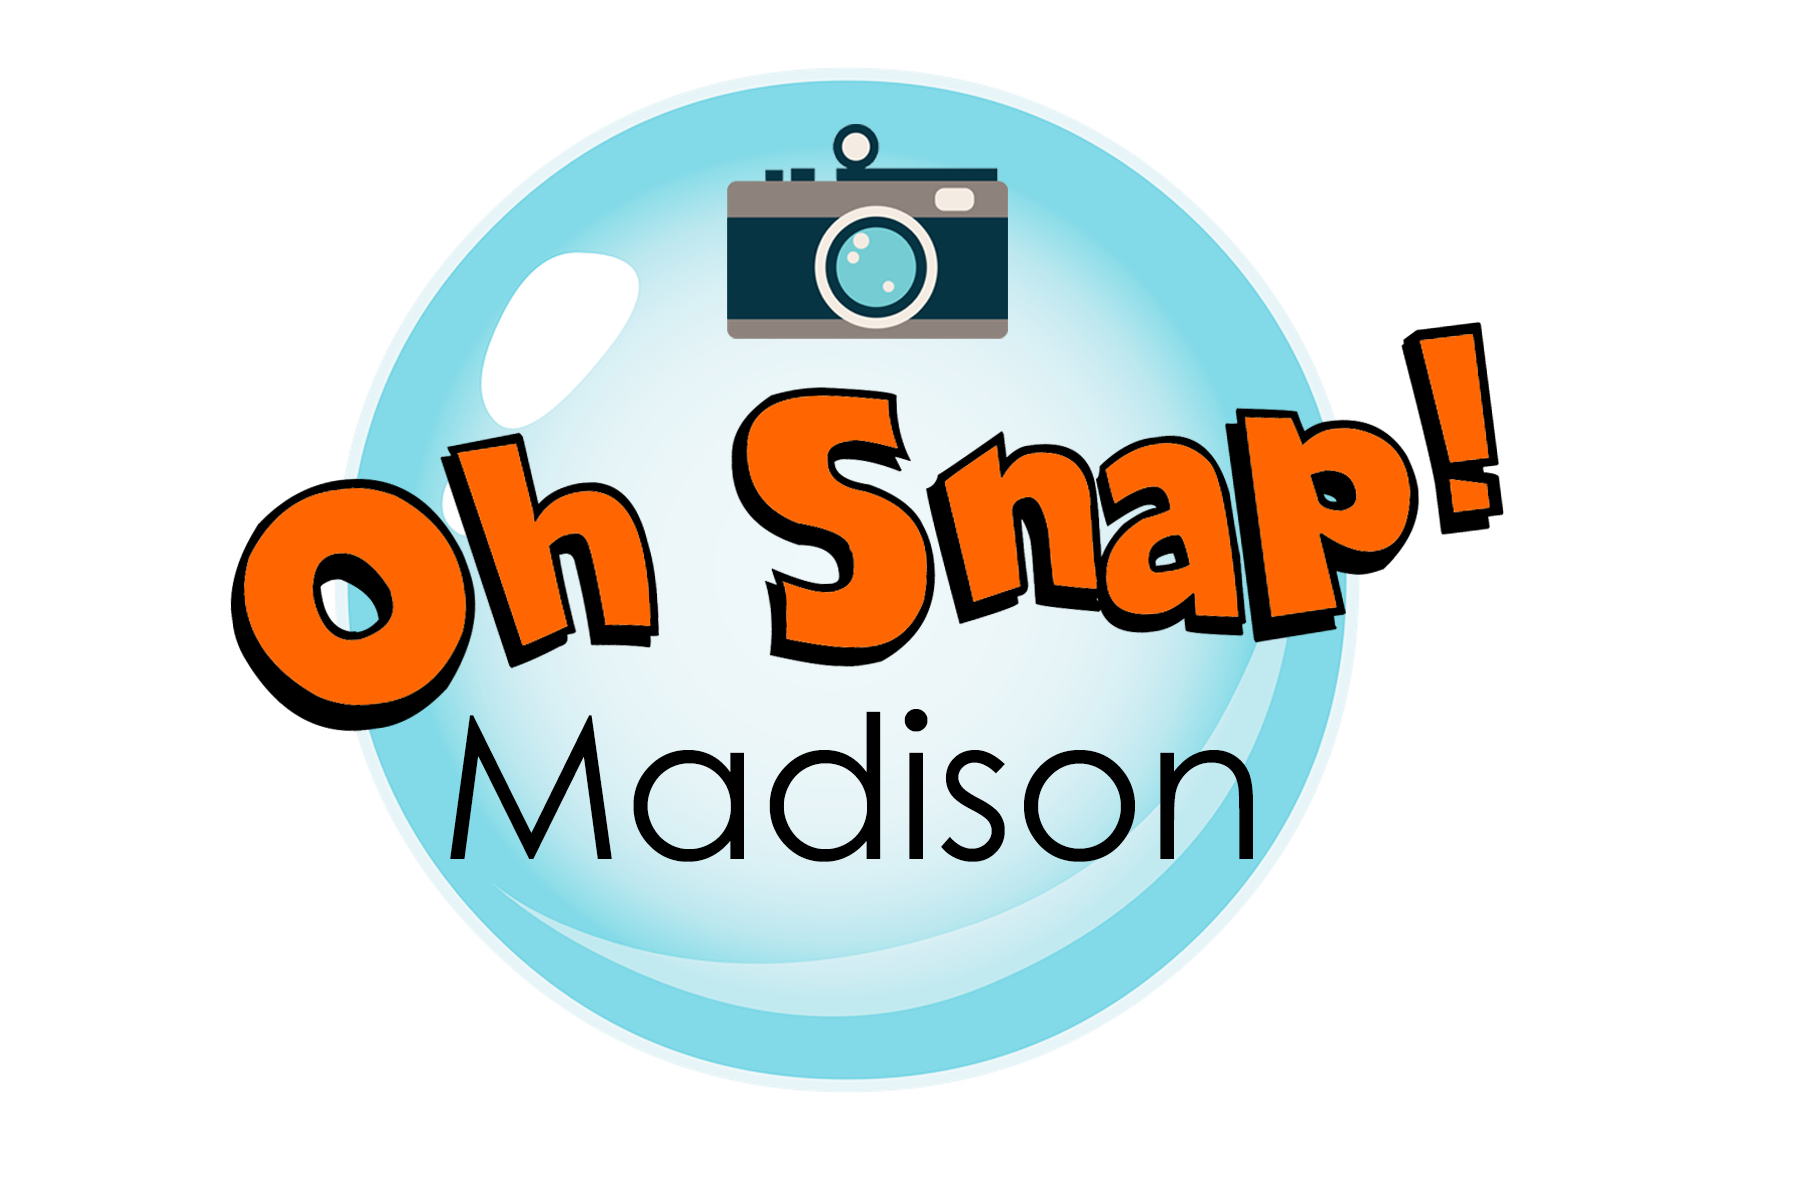 Oh Snap! Madison